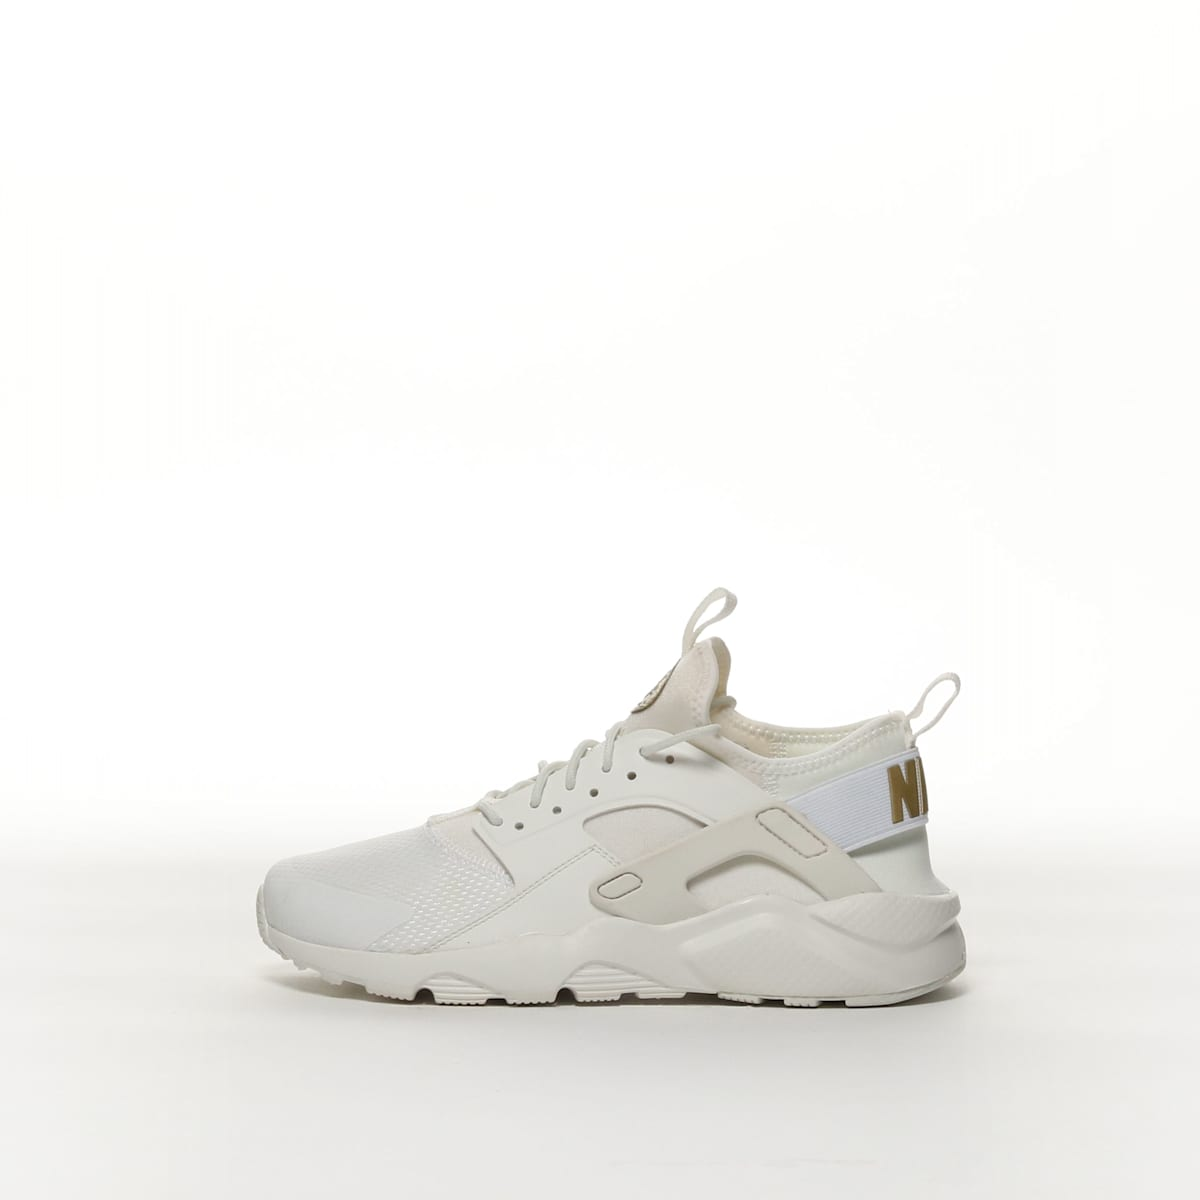 628a5b12bc0d Girls  Nike Air Huarache Run Ultra (GS) Shoe - SUMMIT WHITE METALLIC G –  Resku